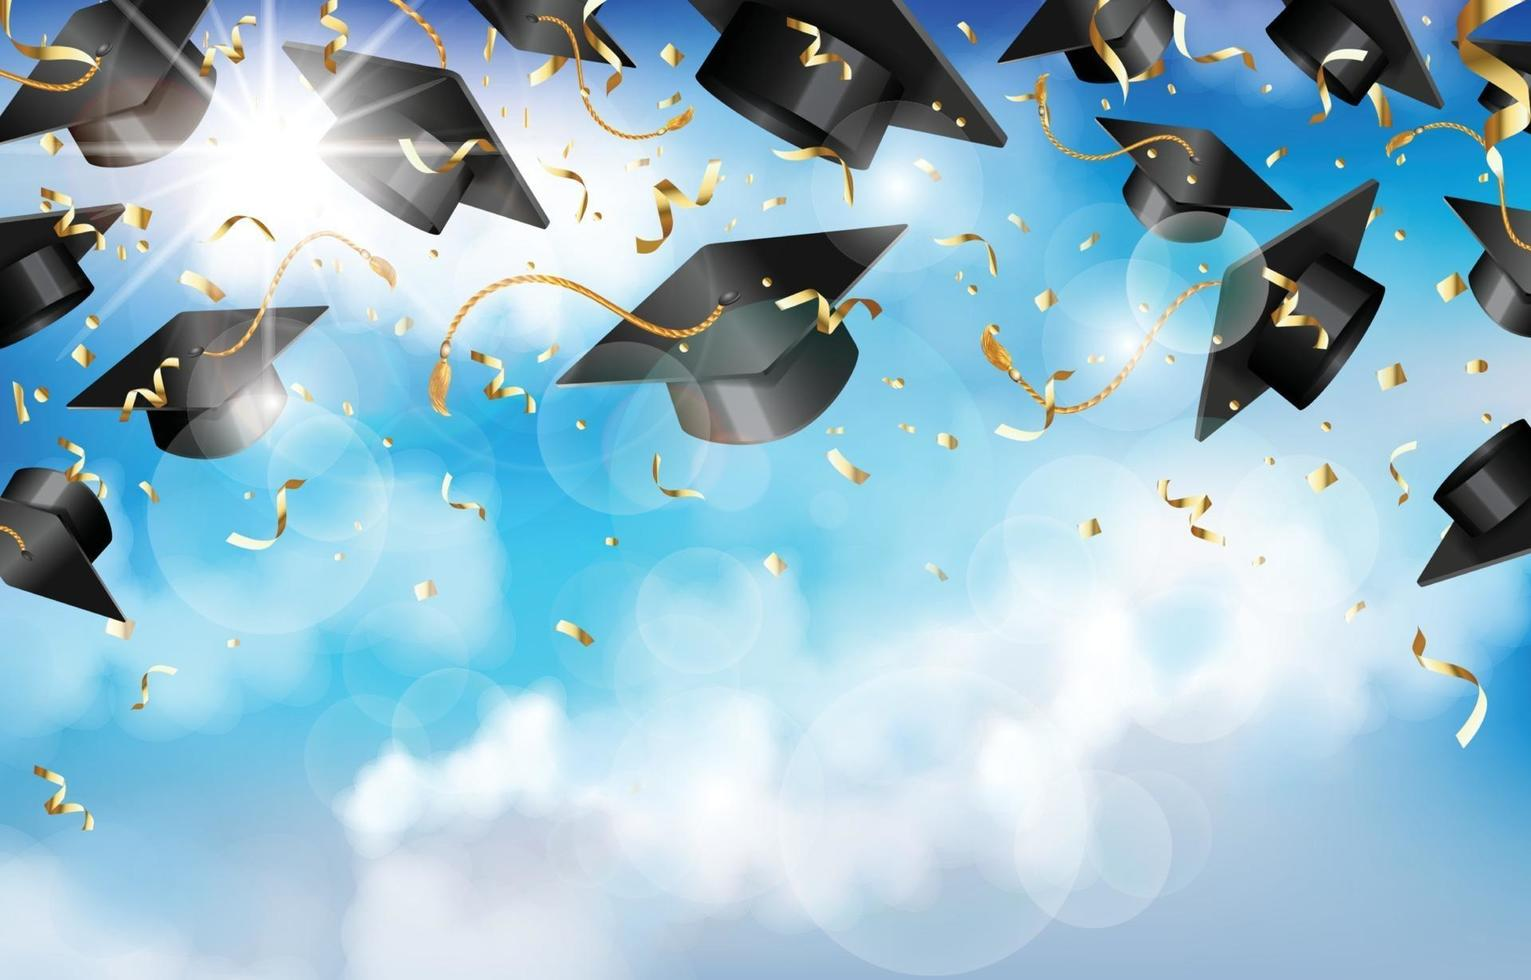 Graduation Caps and Confetti in the Air vector